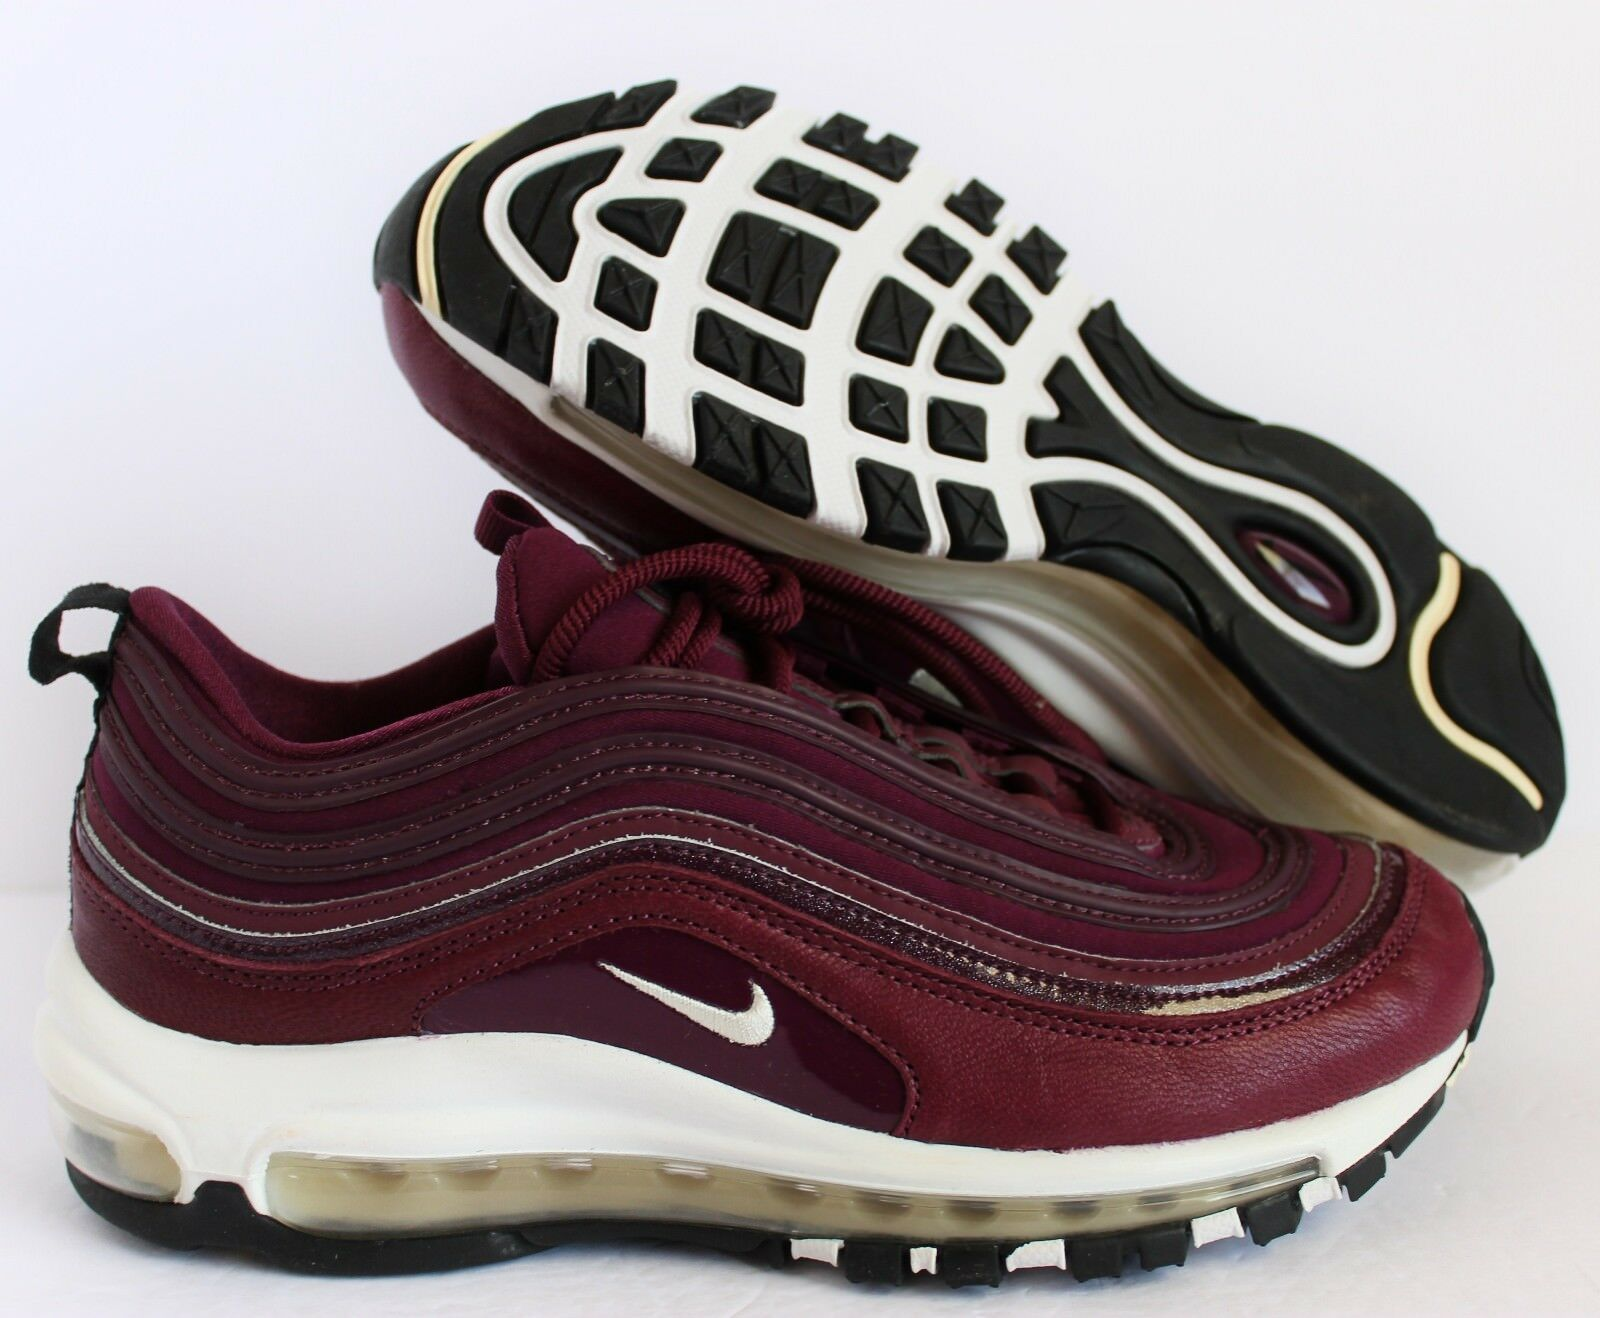 Nike Women Air Max 97  BORDEAUX MUSLIN-BLACK  sz 7 [917646-601] Sample